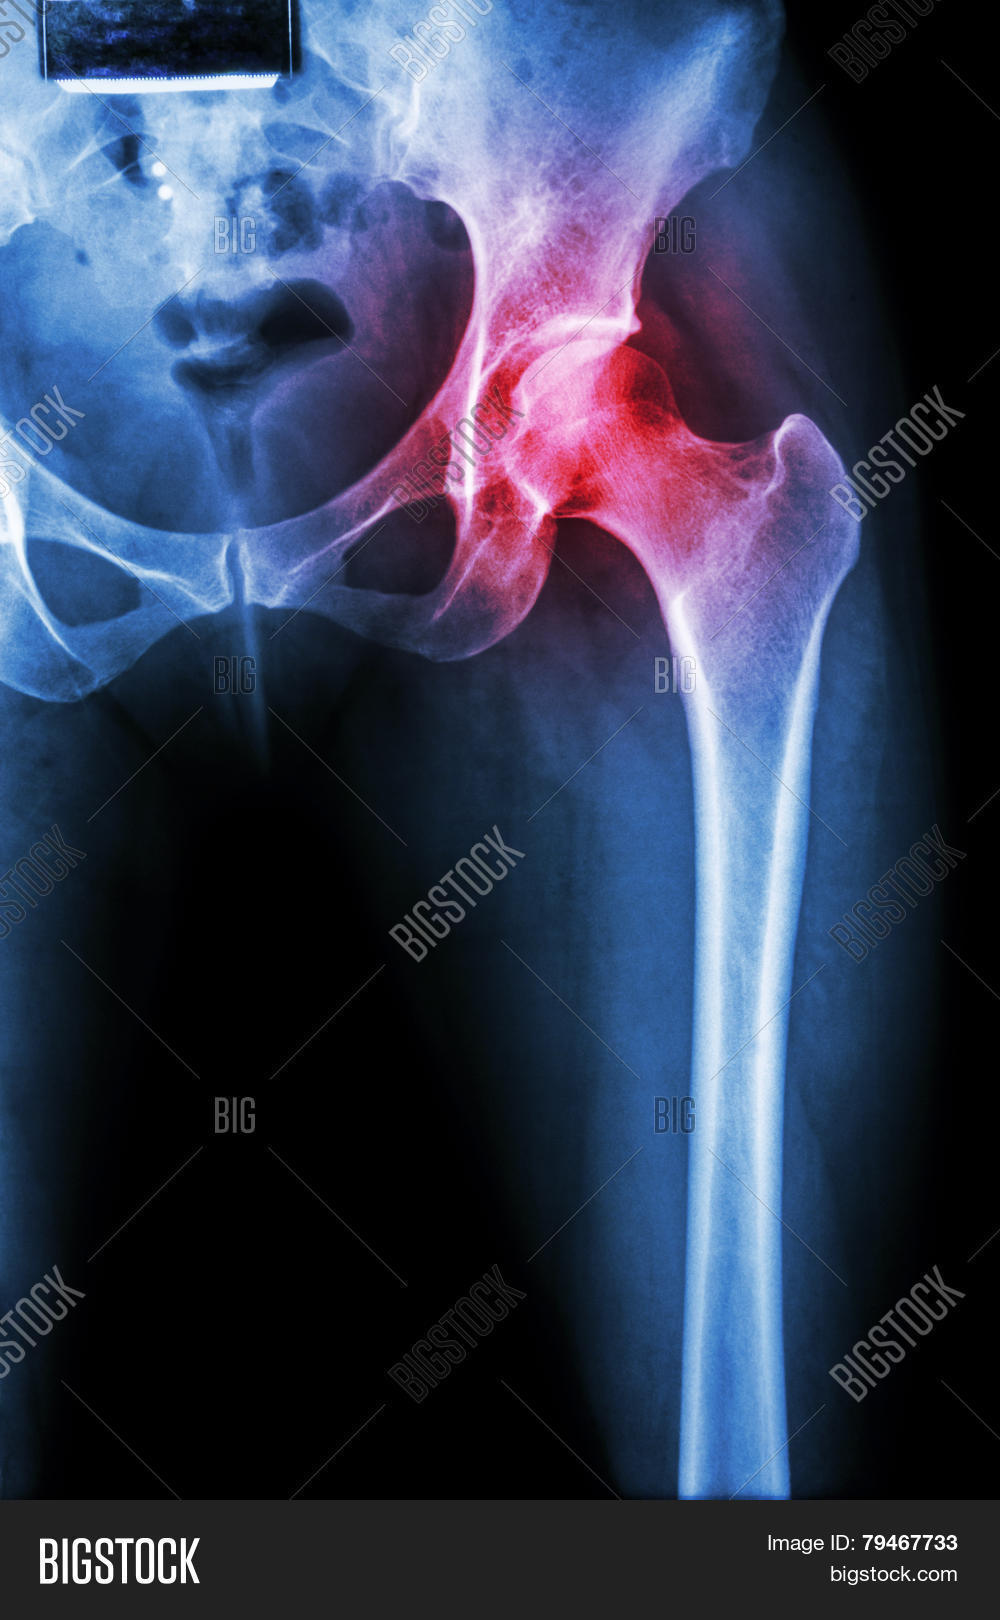 Arthritis hip joint pictures Best of Dallas 2017 Best Restaurants, Bars, Clubs